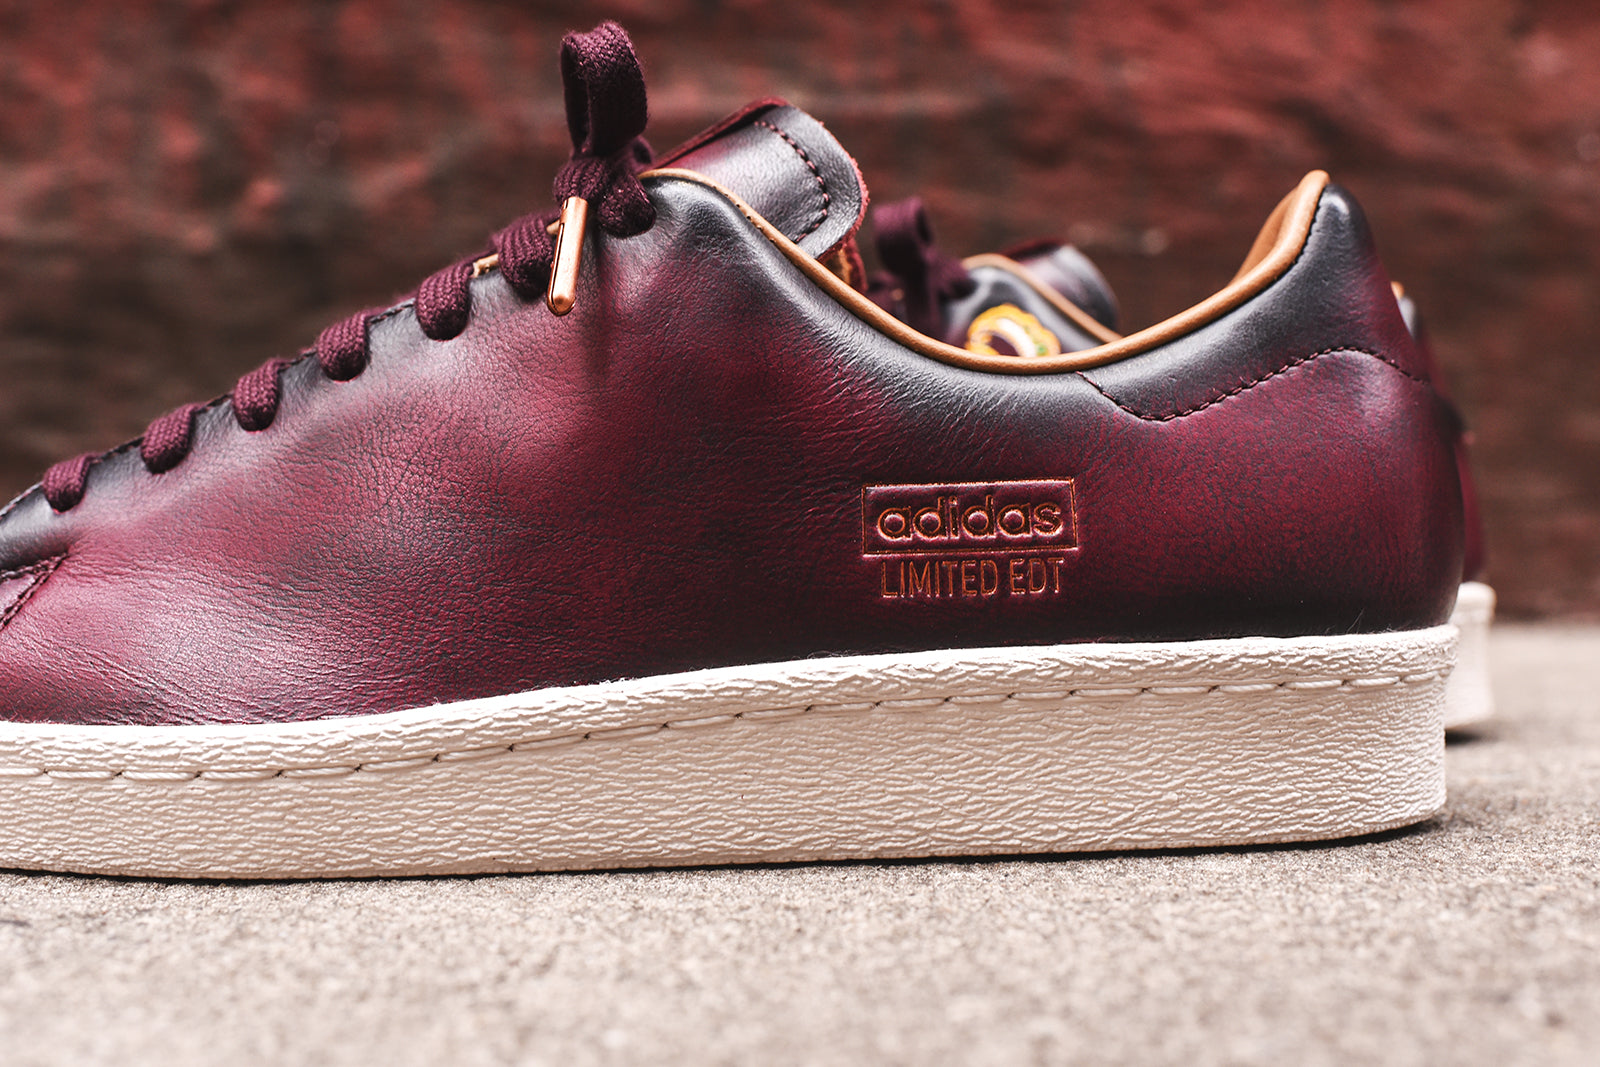 new product 59ea4 9e7df adidas Consortium x Limited Edition Superstar - Burgundy – Kith